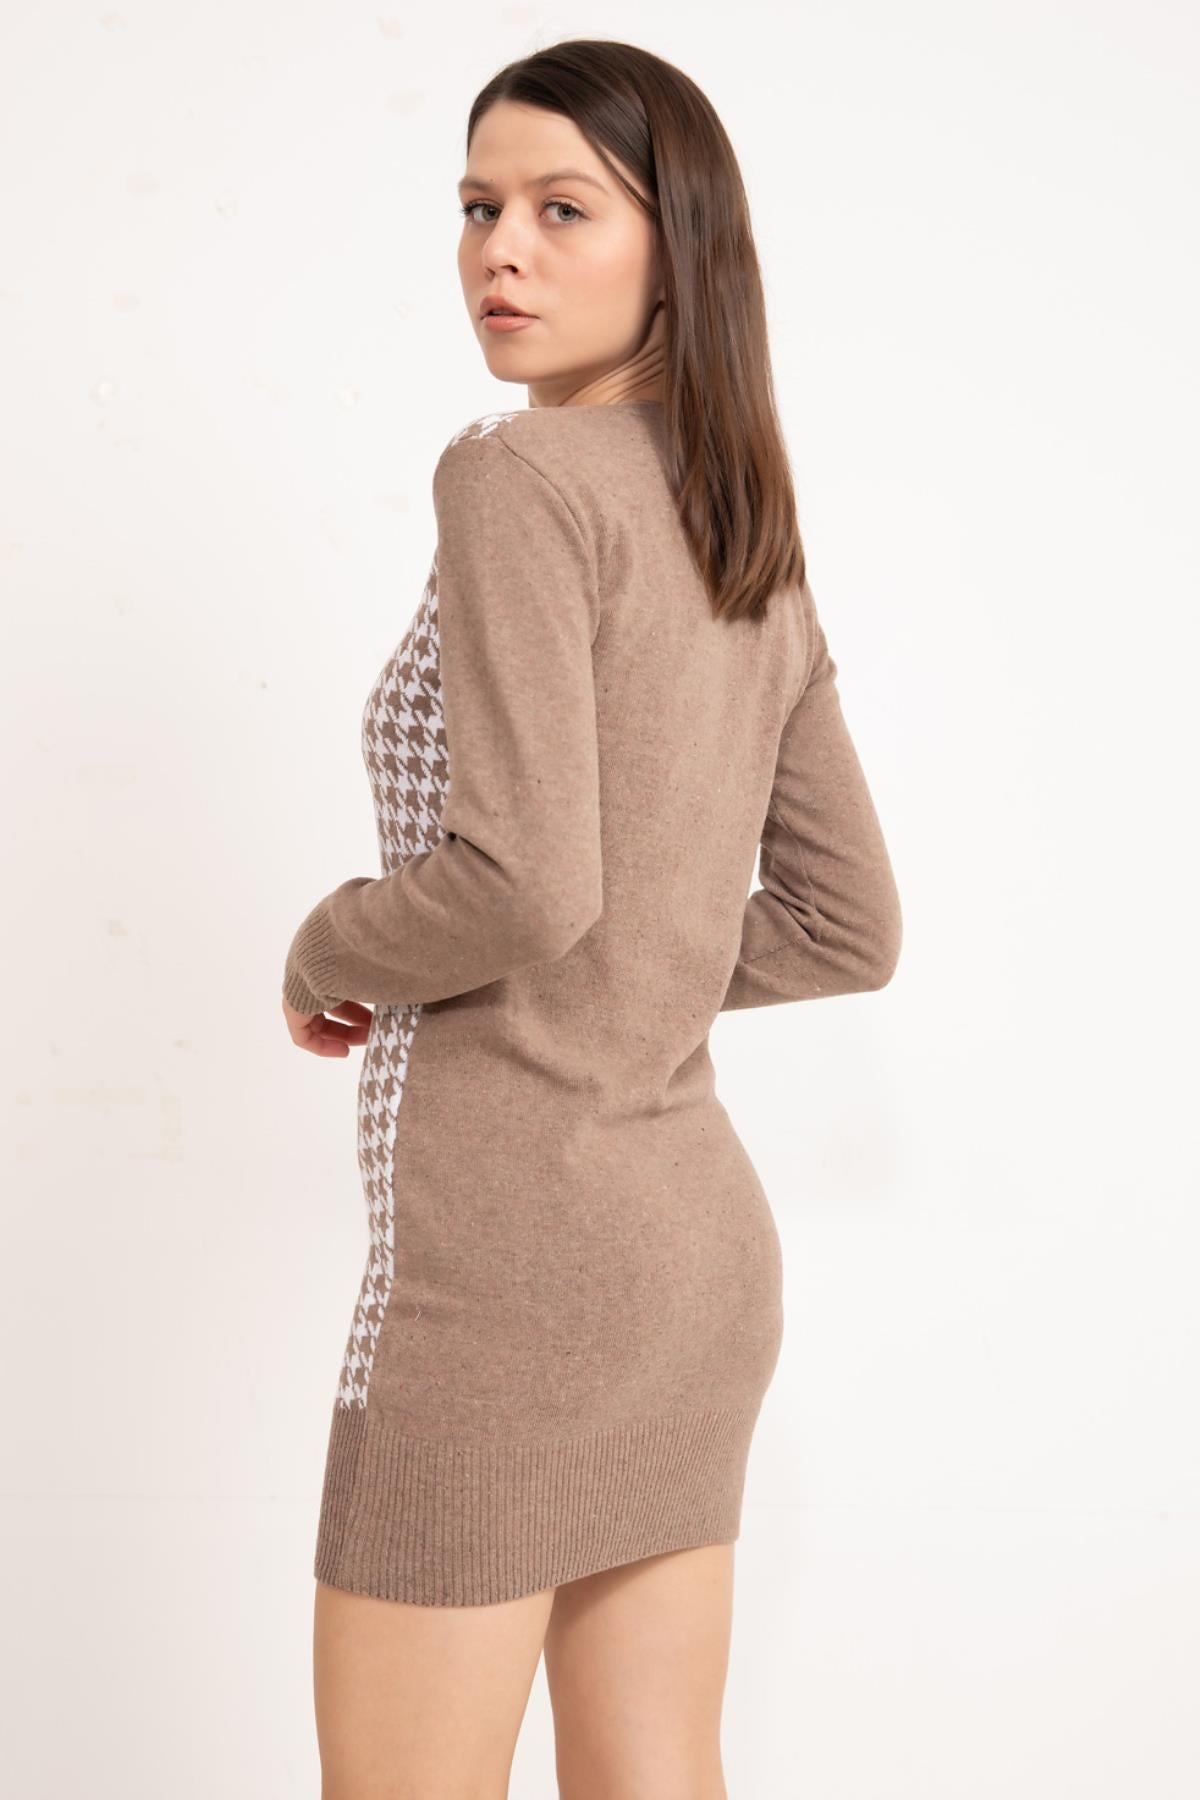 Vizon Front patterned knitwear tunic.